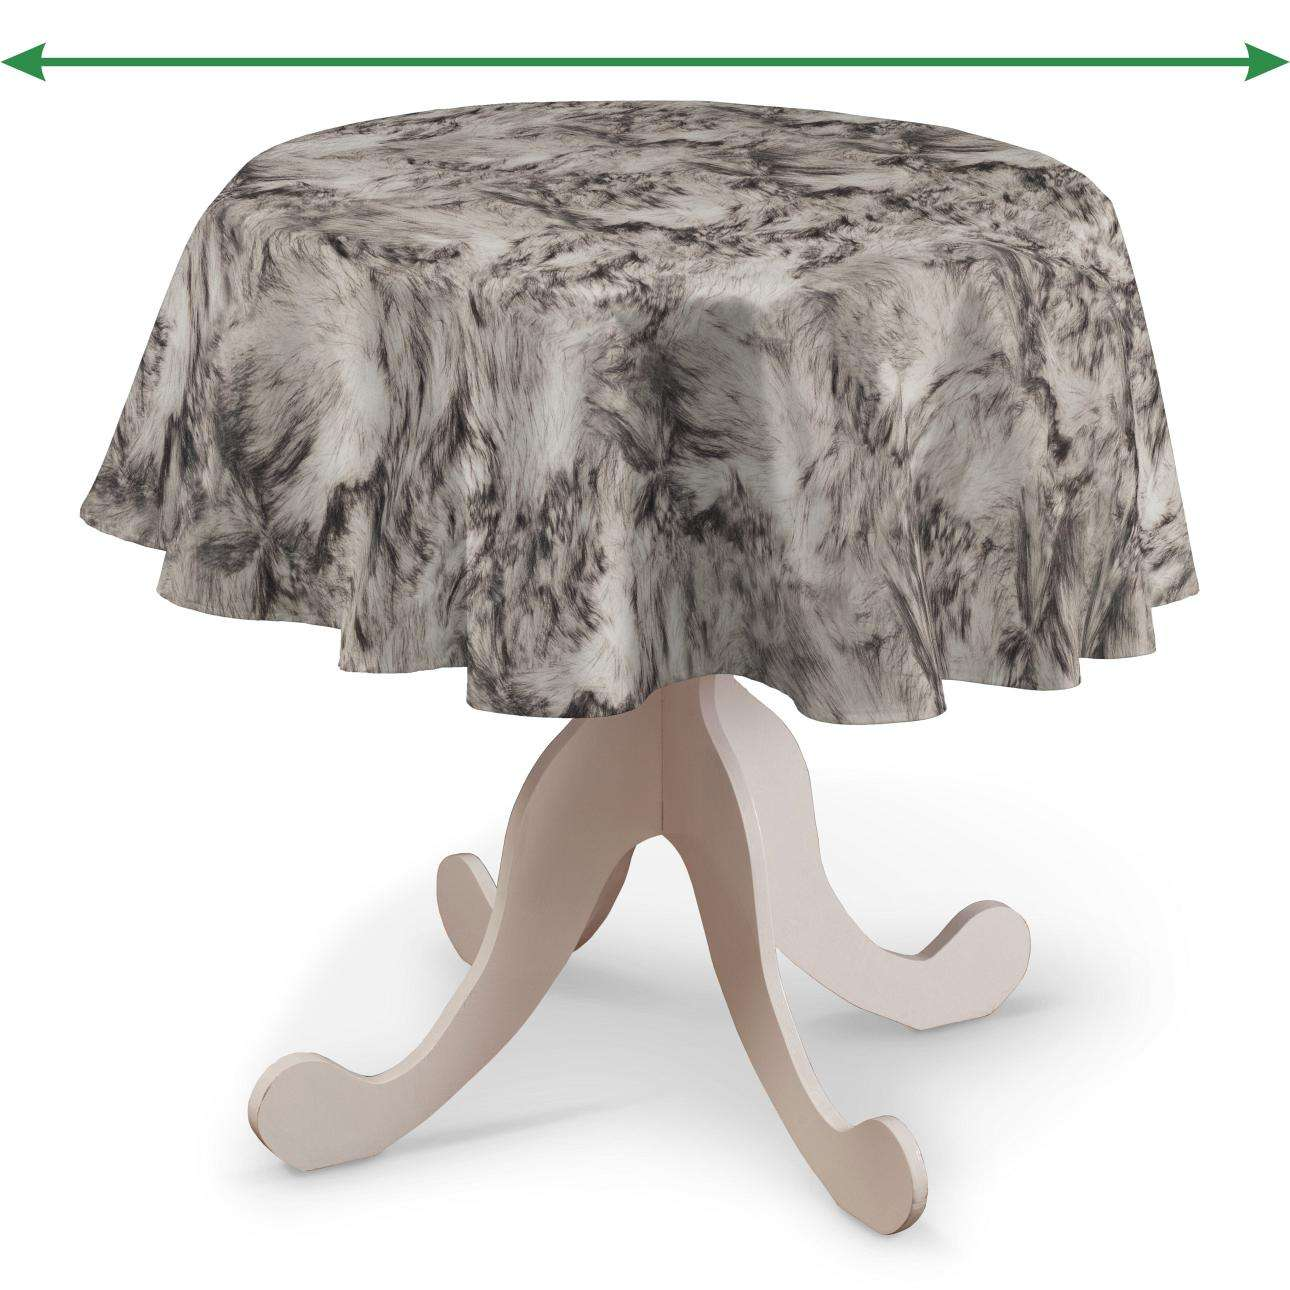 Round tablecloth in collection SALE, fabric: 140-82